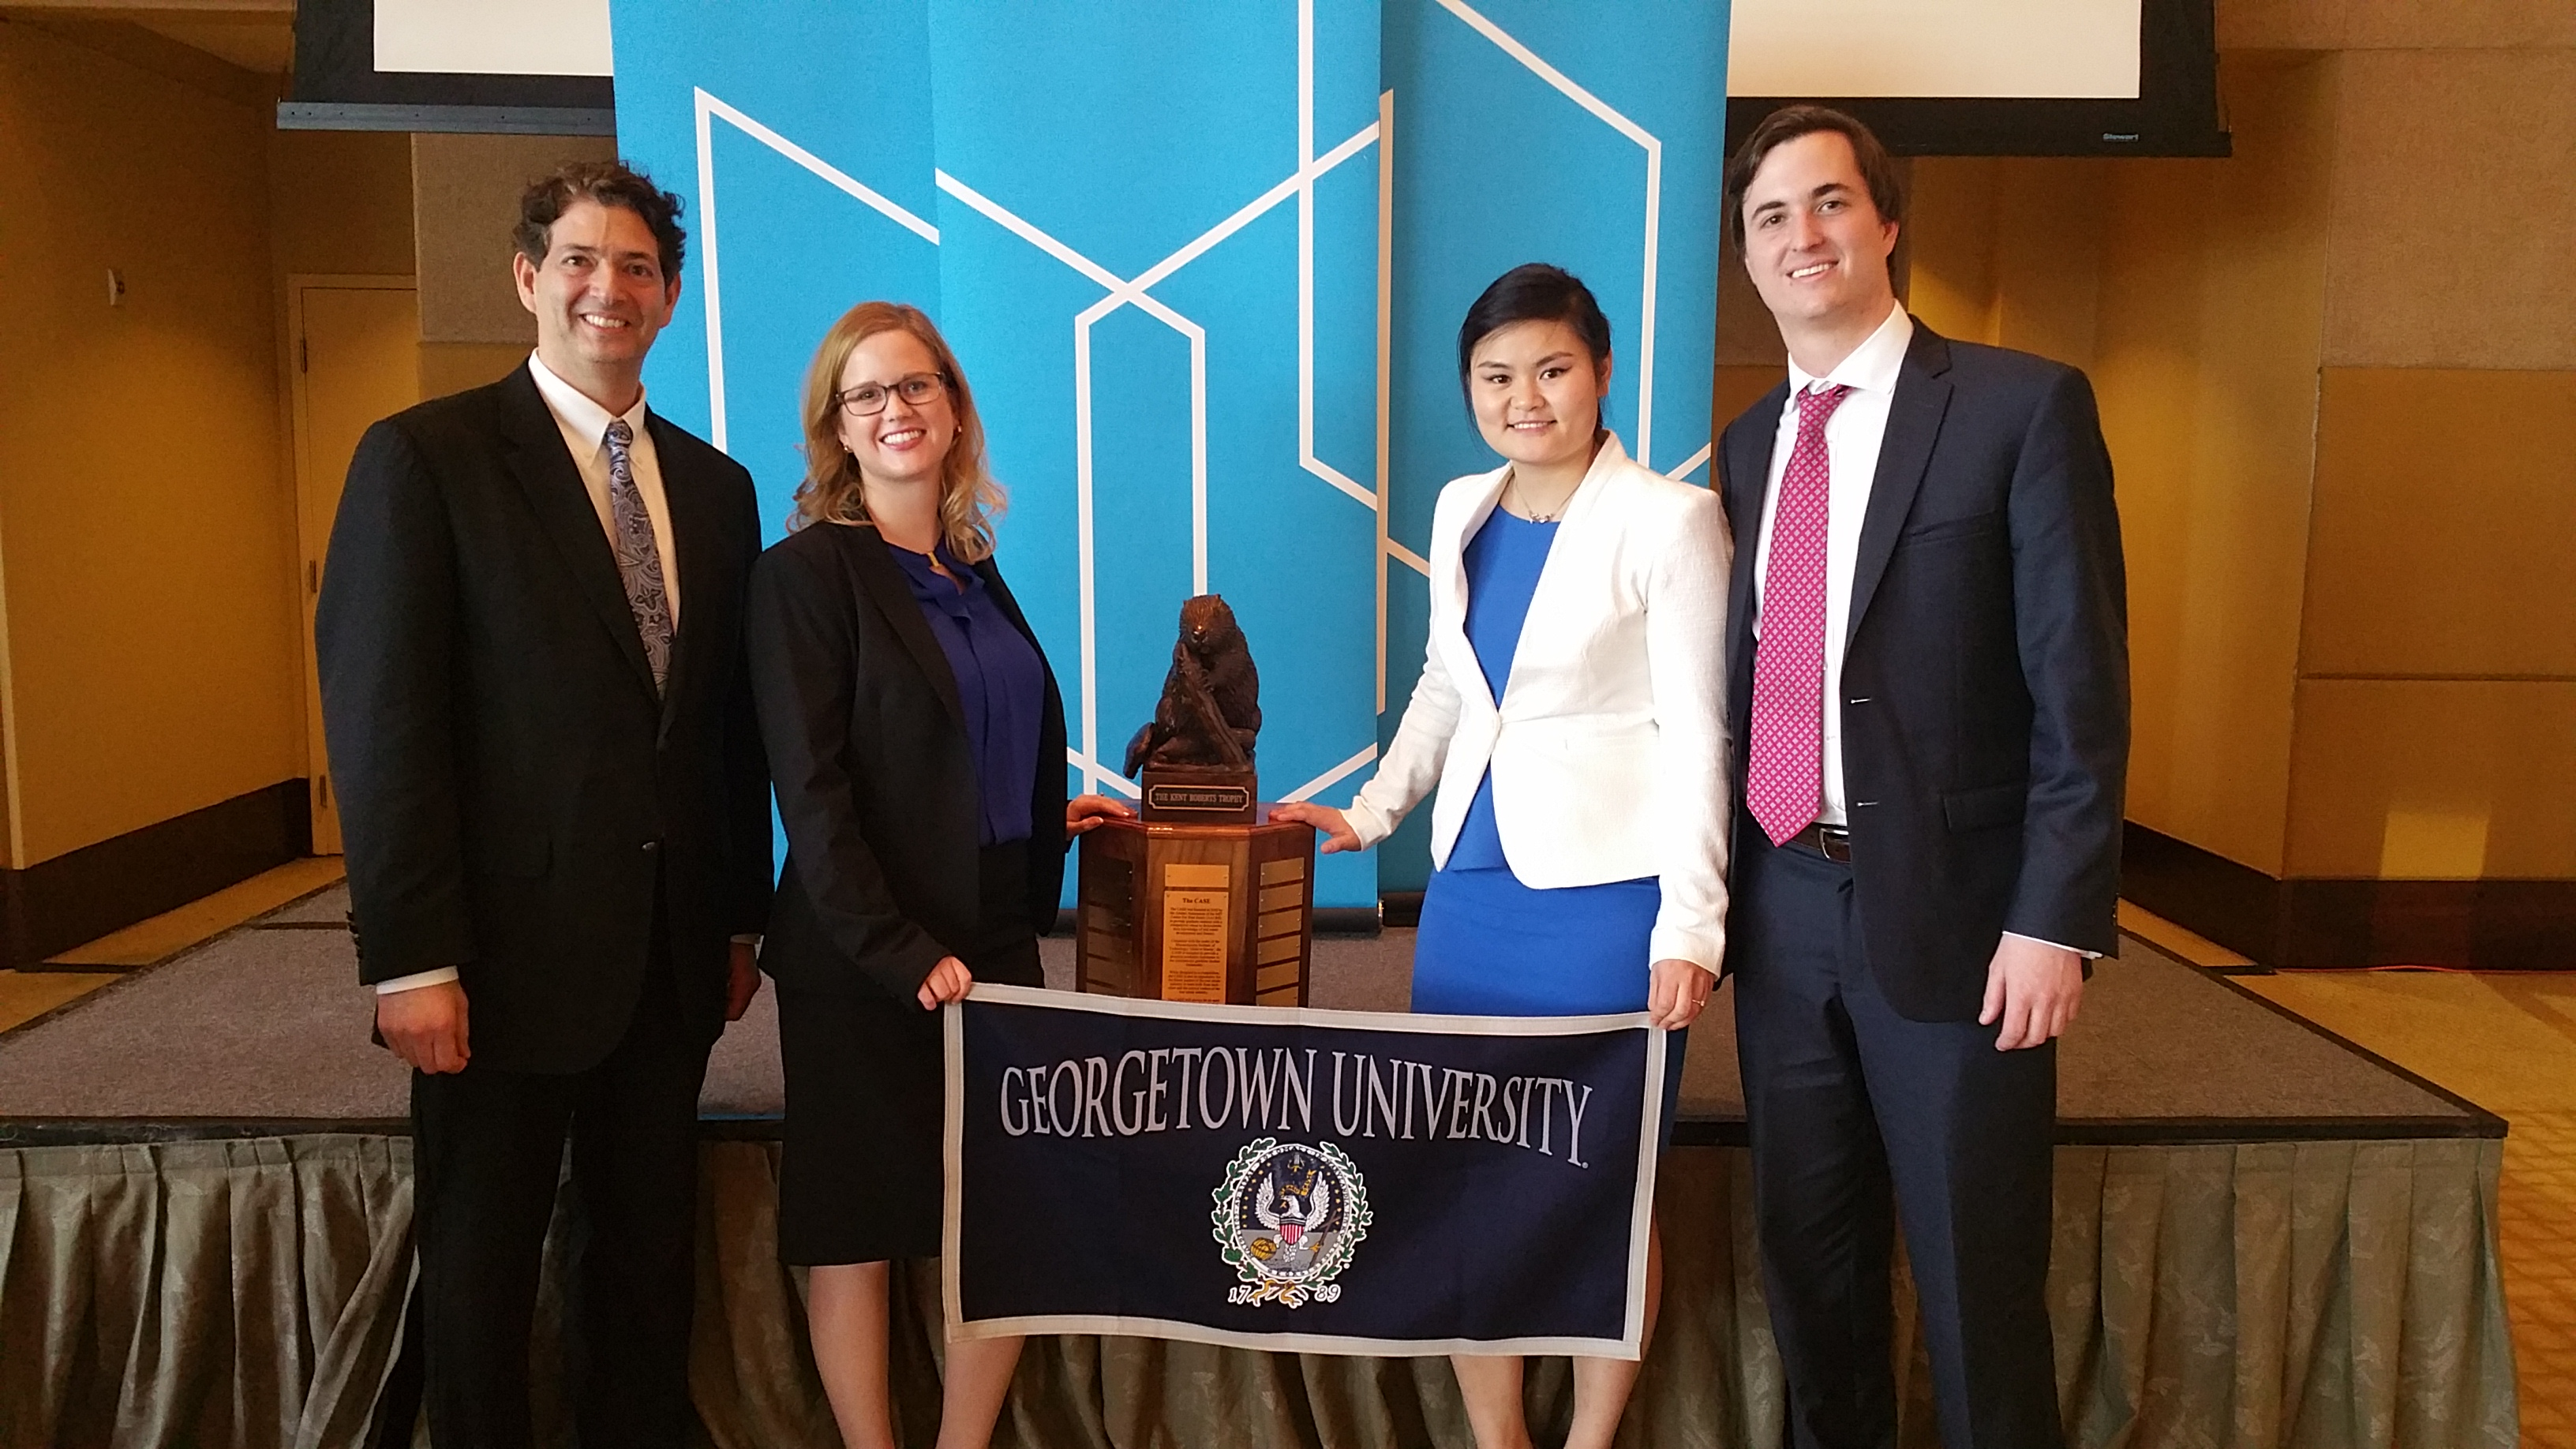 f1b15ed1d39f14 Graduate students from the masters in real estate program at the Georgetown  University School of Continuing Studies